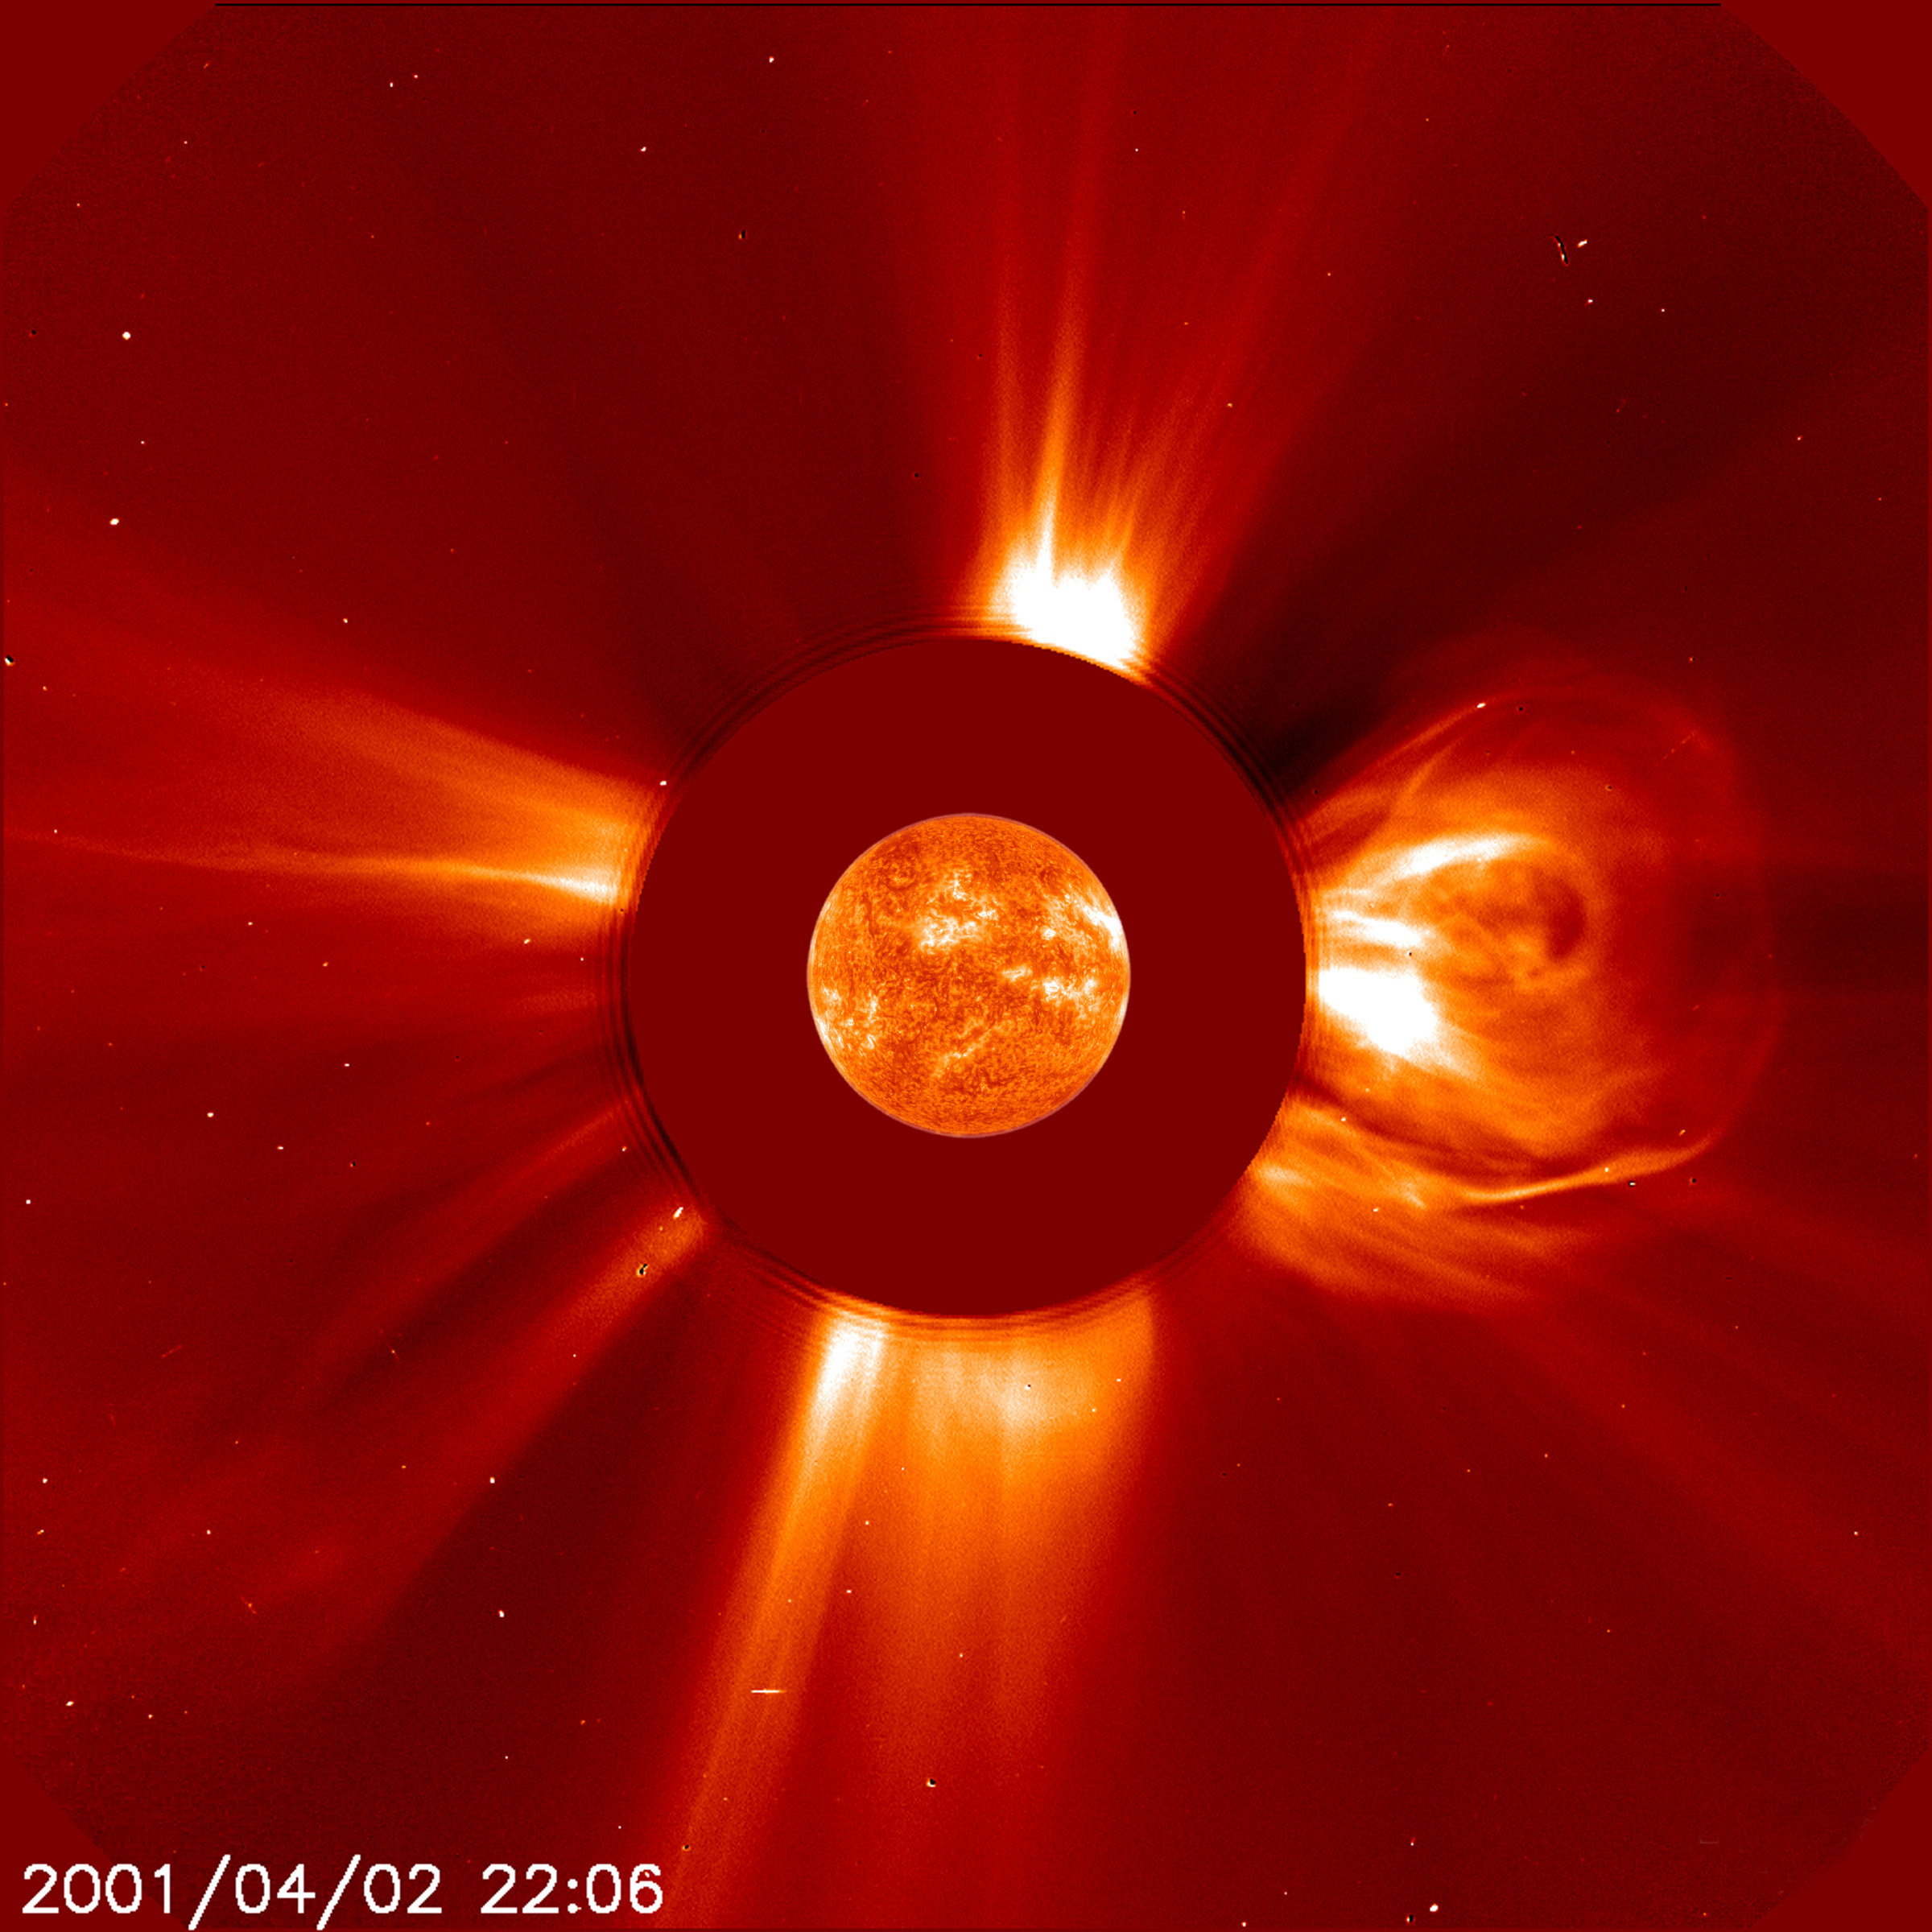 NASA Visible Earth: Biggest Solar Flare on Record